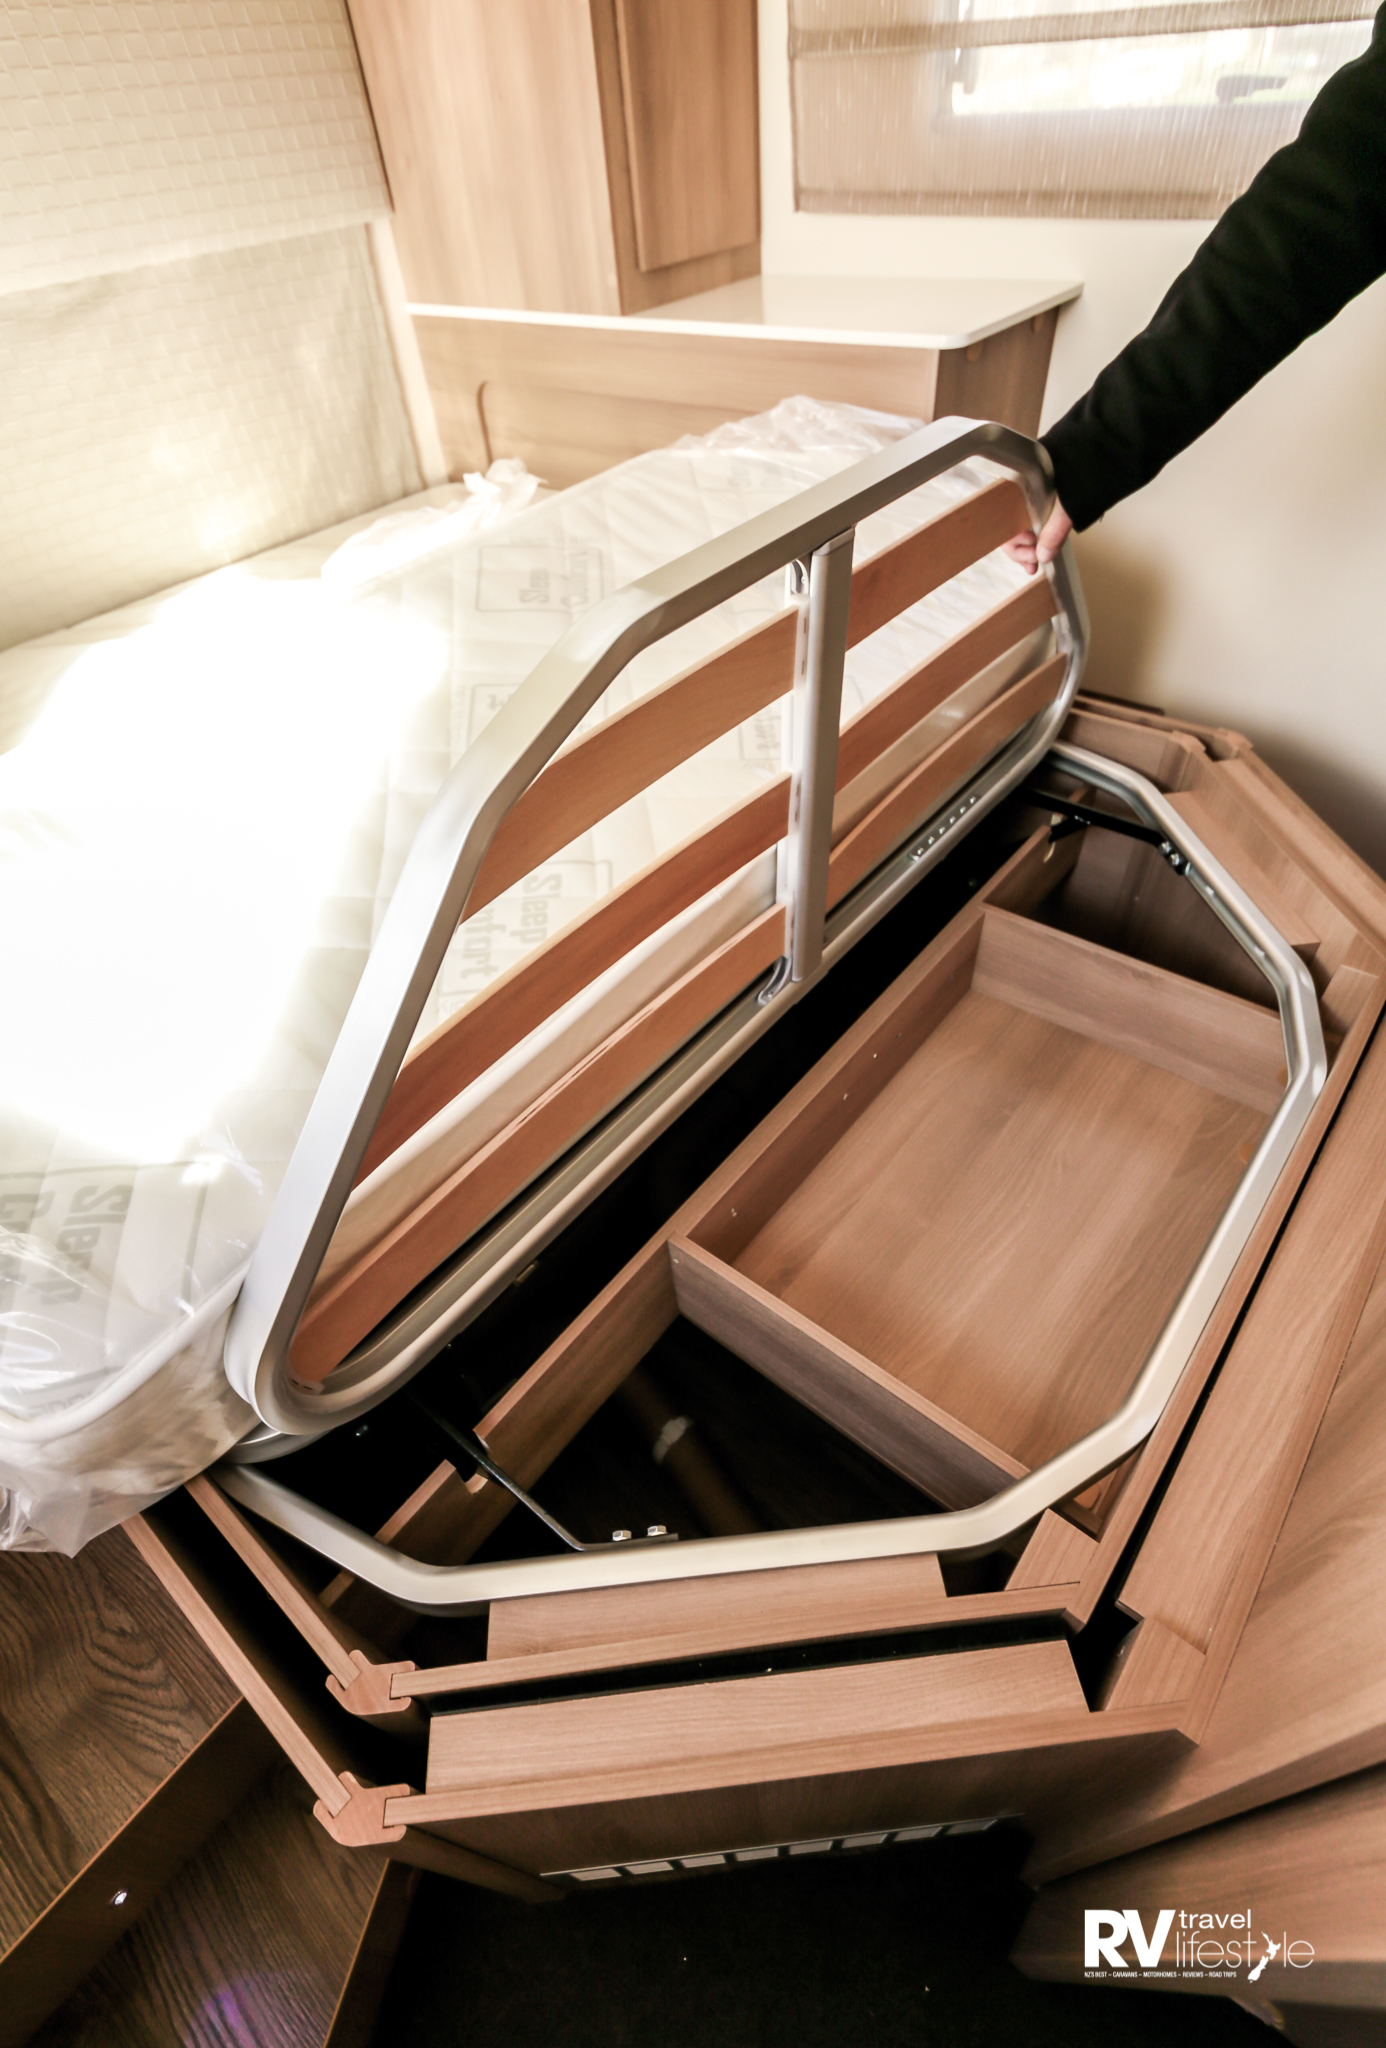 Extra cabin storage under foot of bed